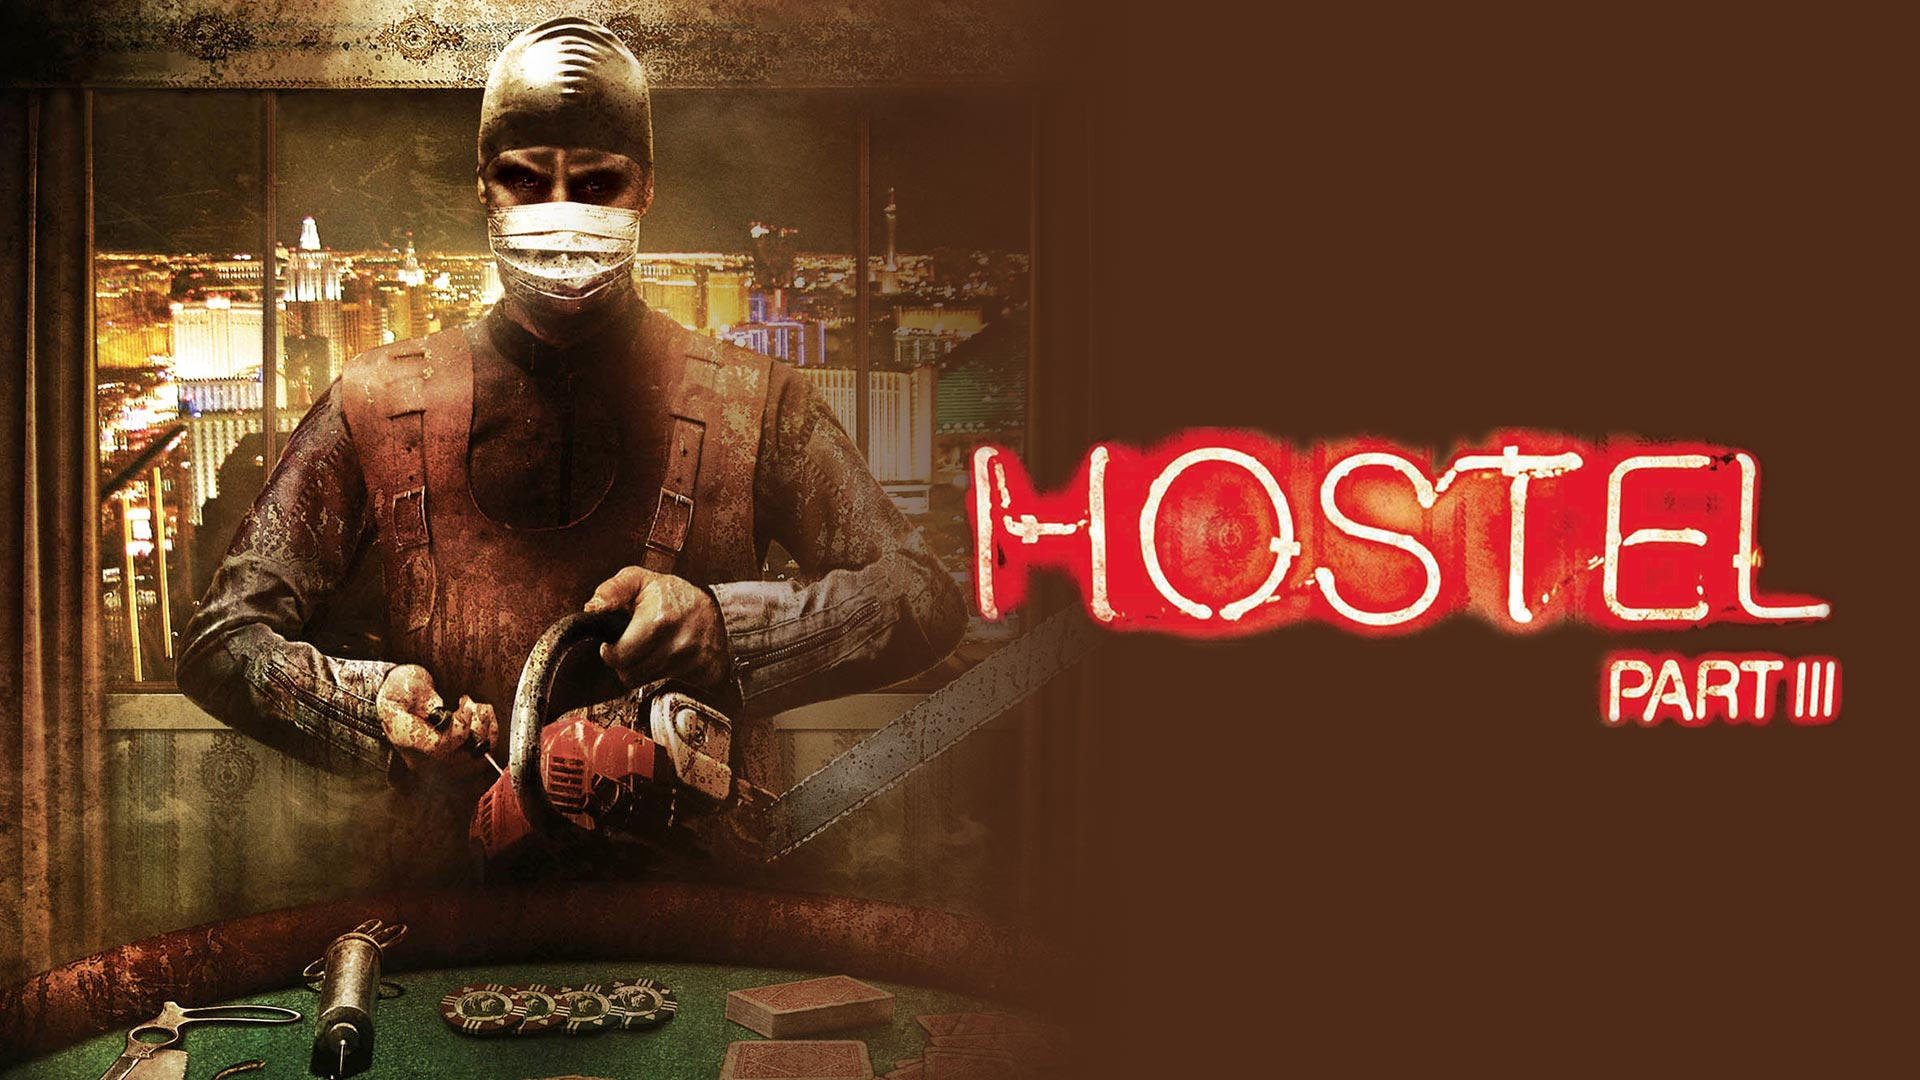 Watch Hostel Part II (Unrated) | Prime Video